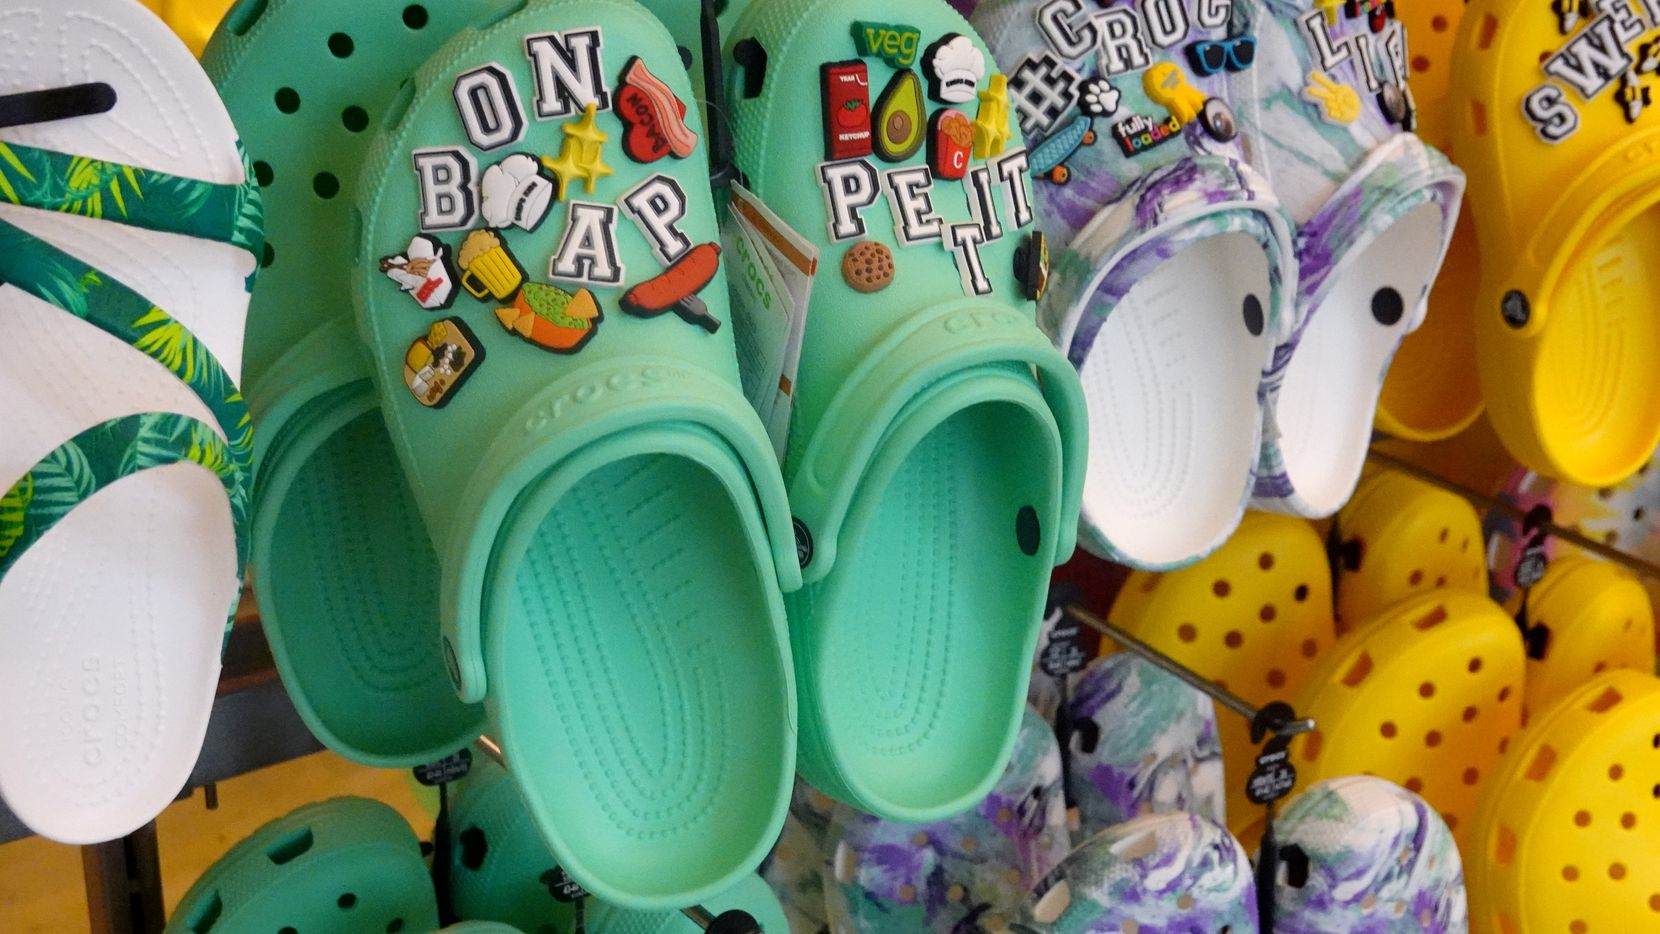 Crocs  are displayed at one of its own retail stores. Last week, Crocs Inc. reported second-quarter net income of $319 million, topping Wall Street expectations.